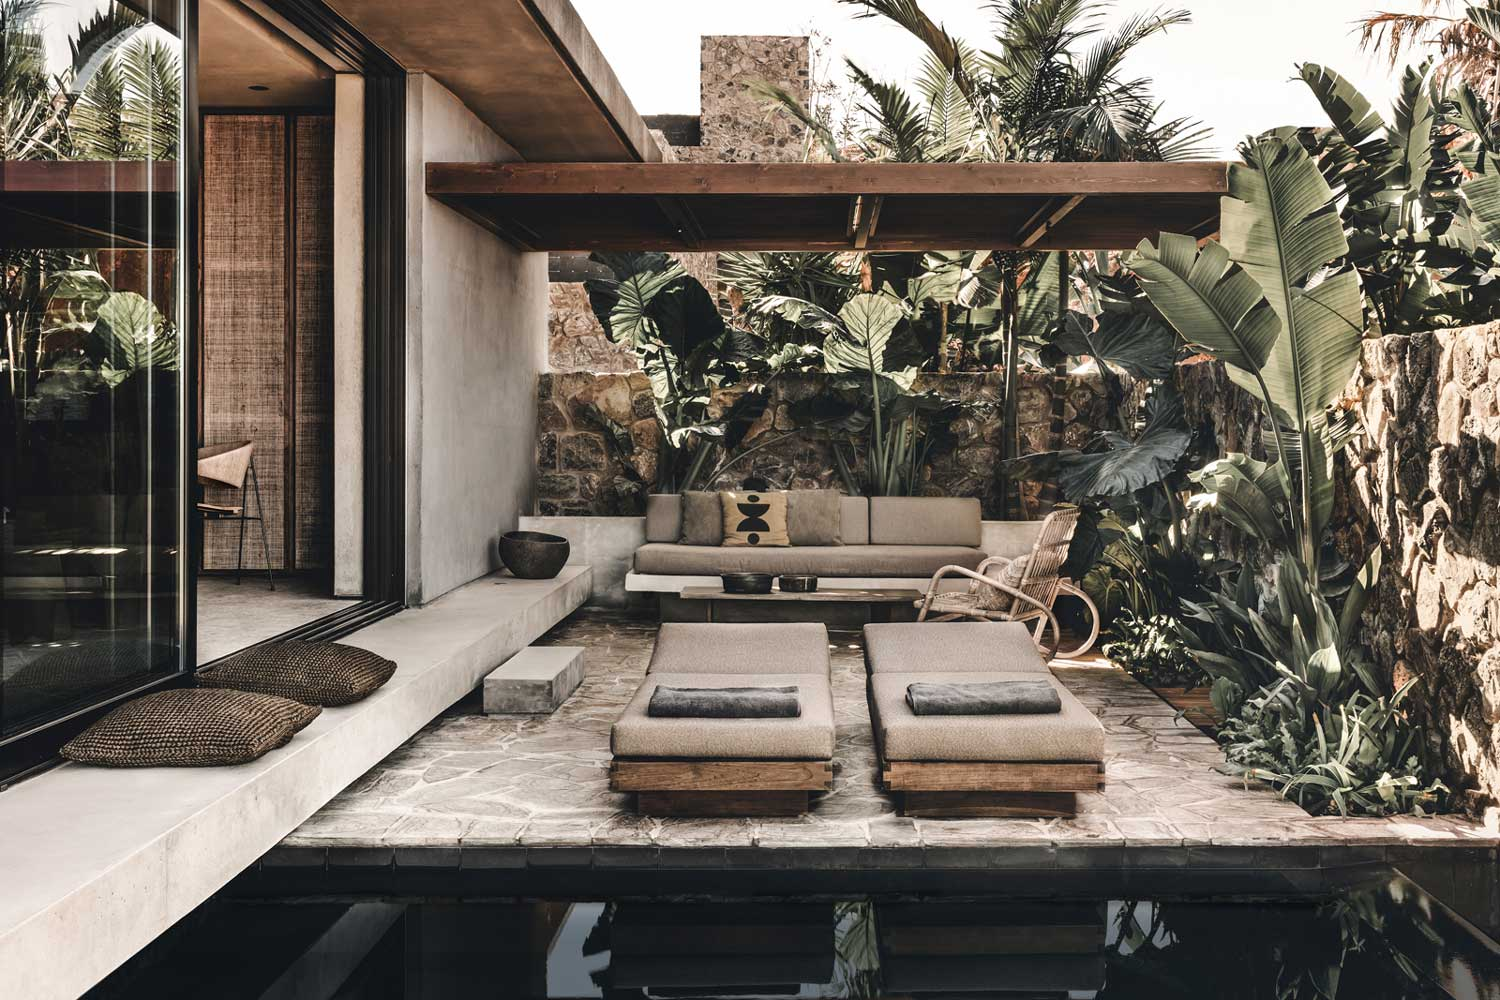 Casa Cook Chania on Greek Island Crete by k studio | Yellowtrace